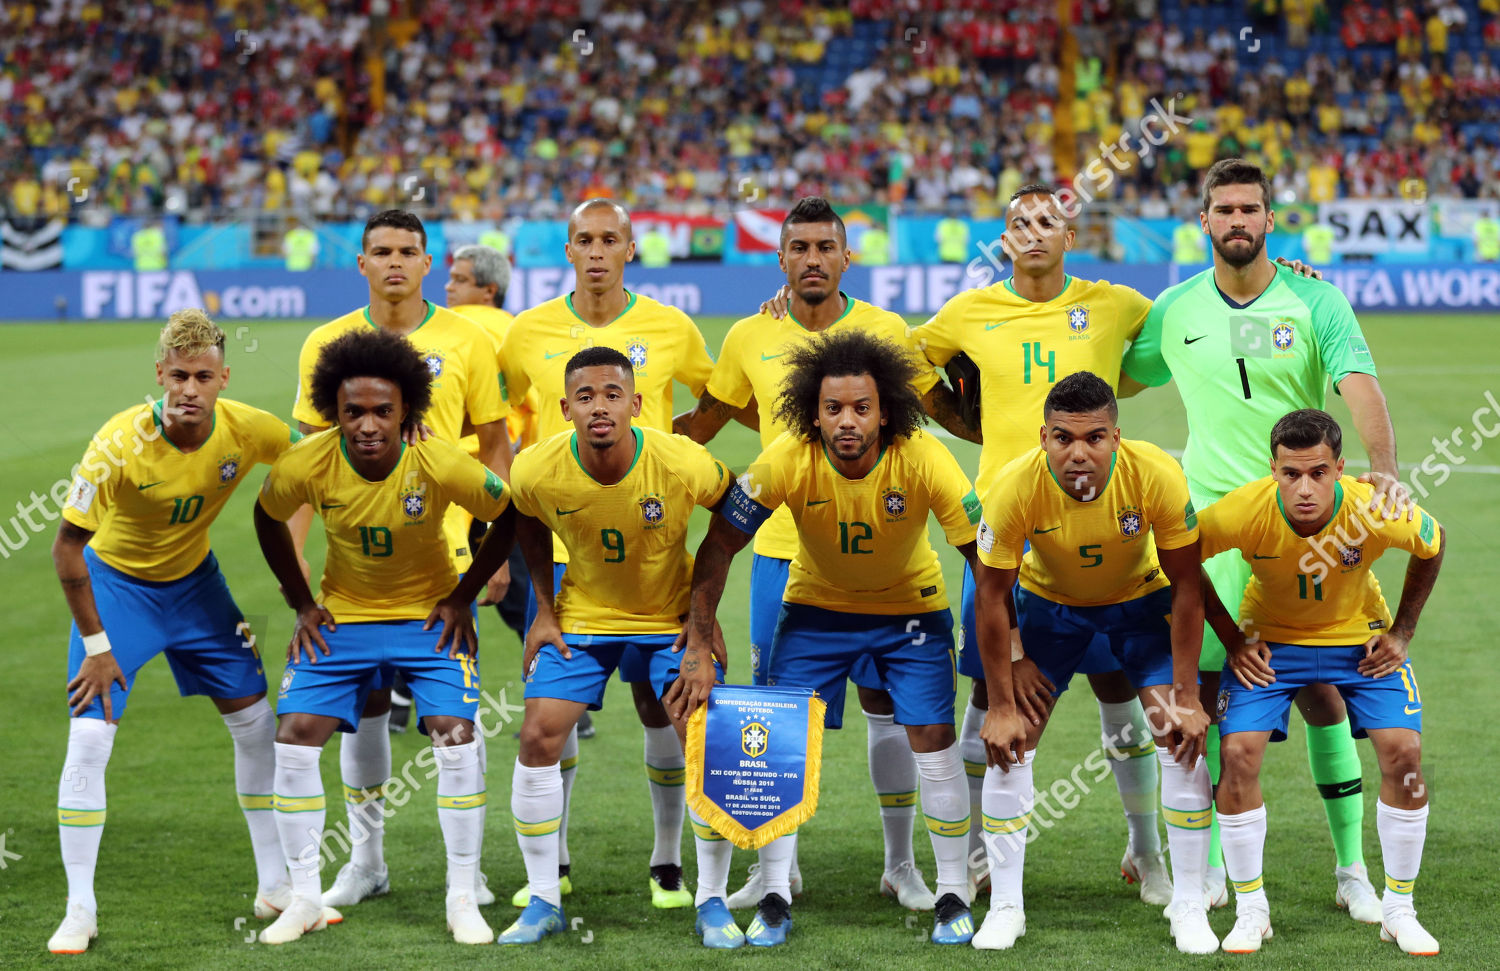 a4fbf2af9 Brazil team group lineup BRA Editorial Stock Photo - Stock Image ...